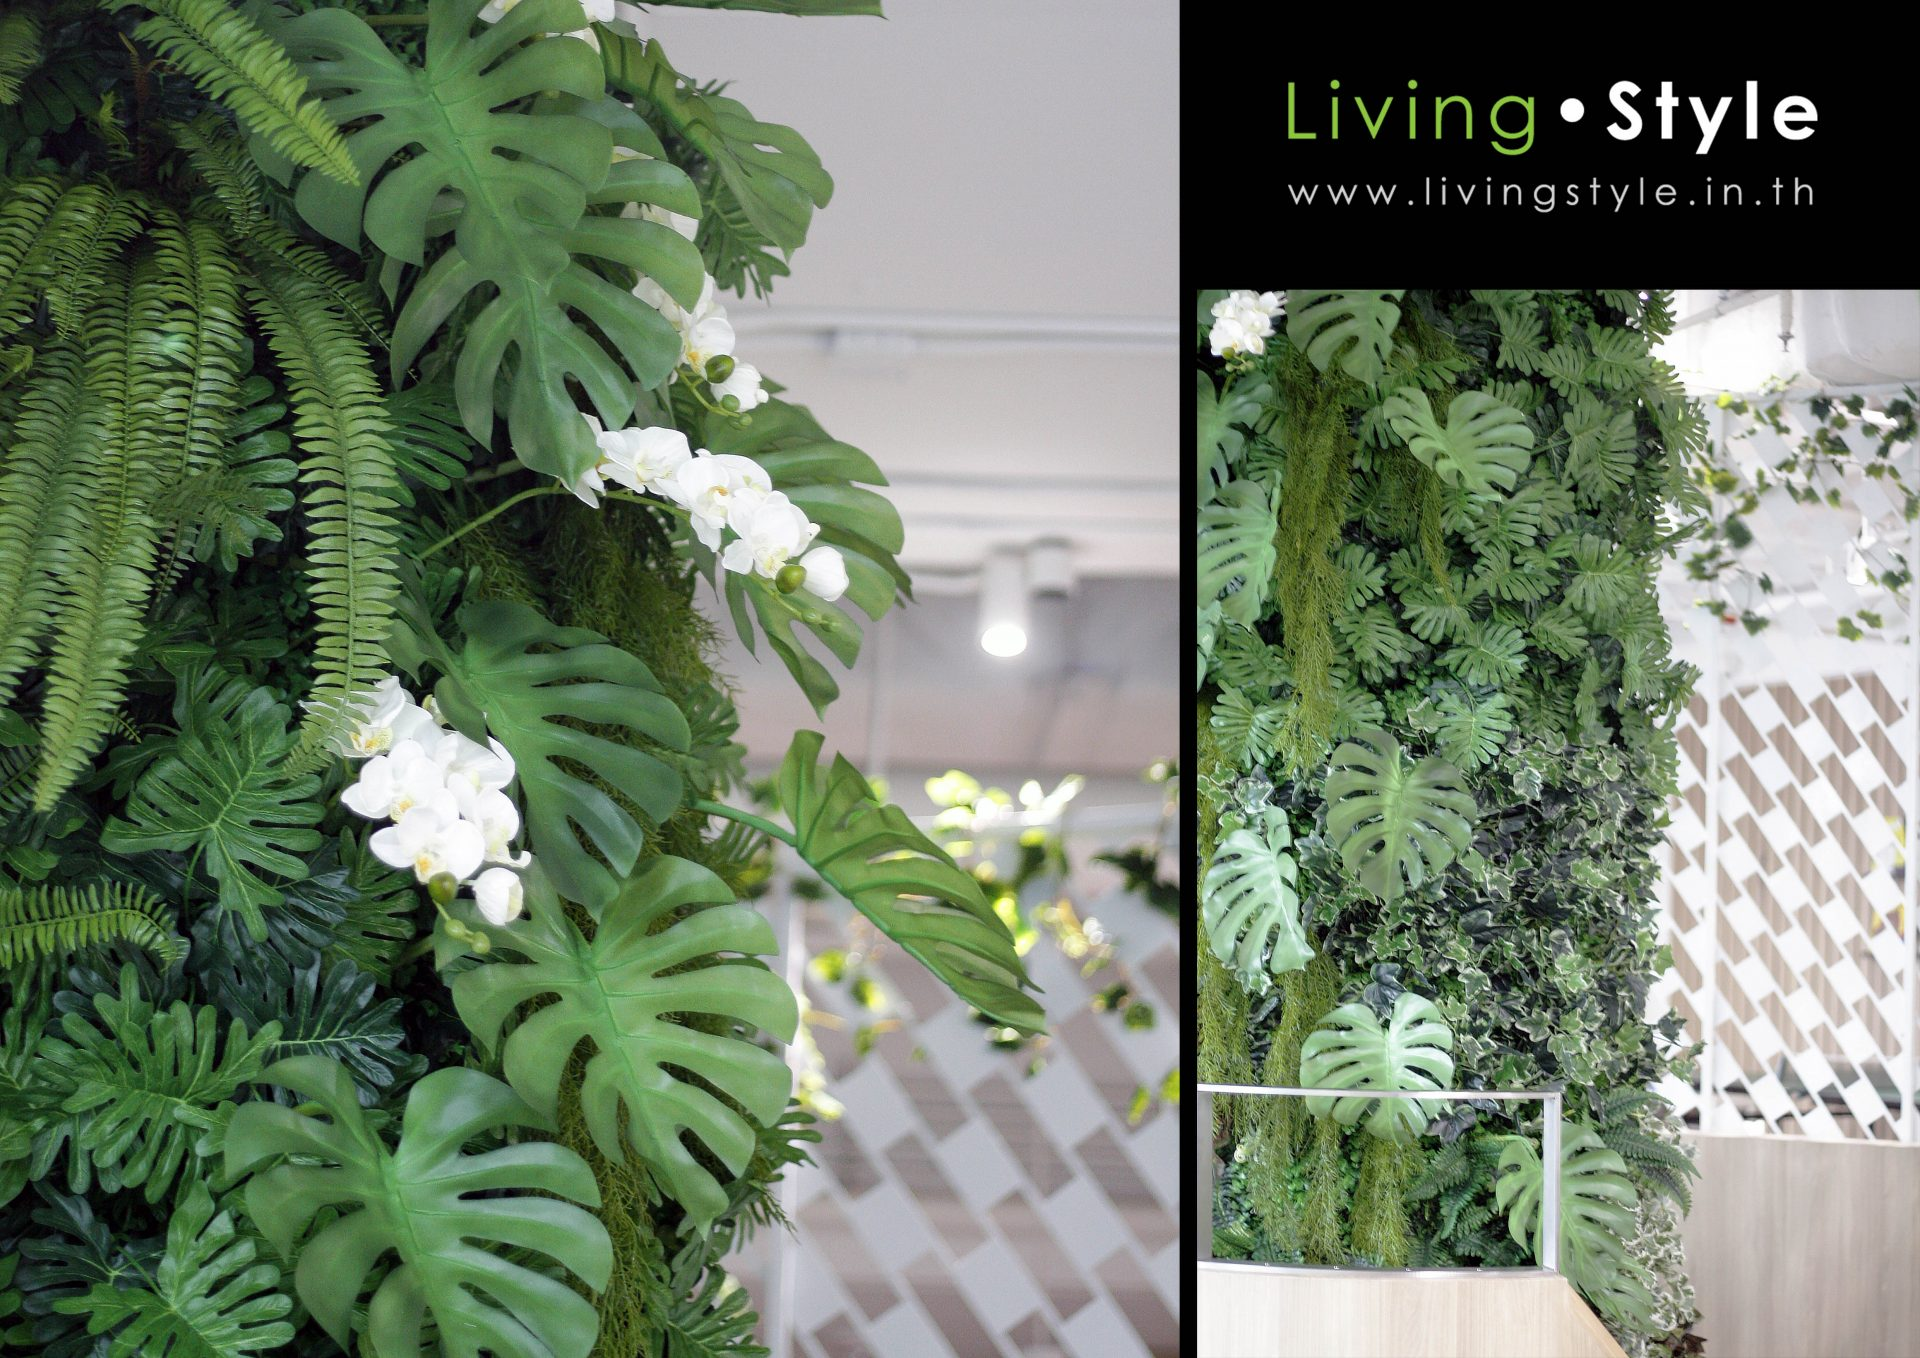 Livingstyle 020-1 catalog